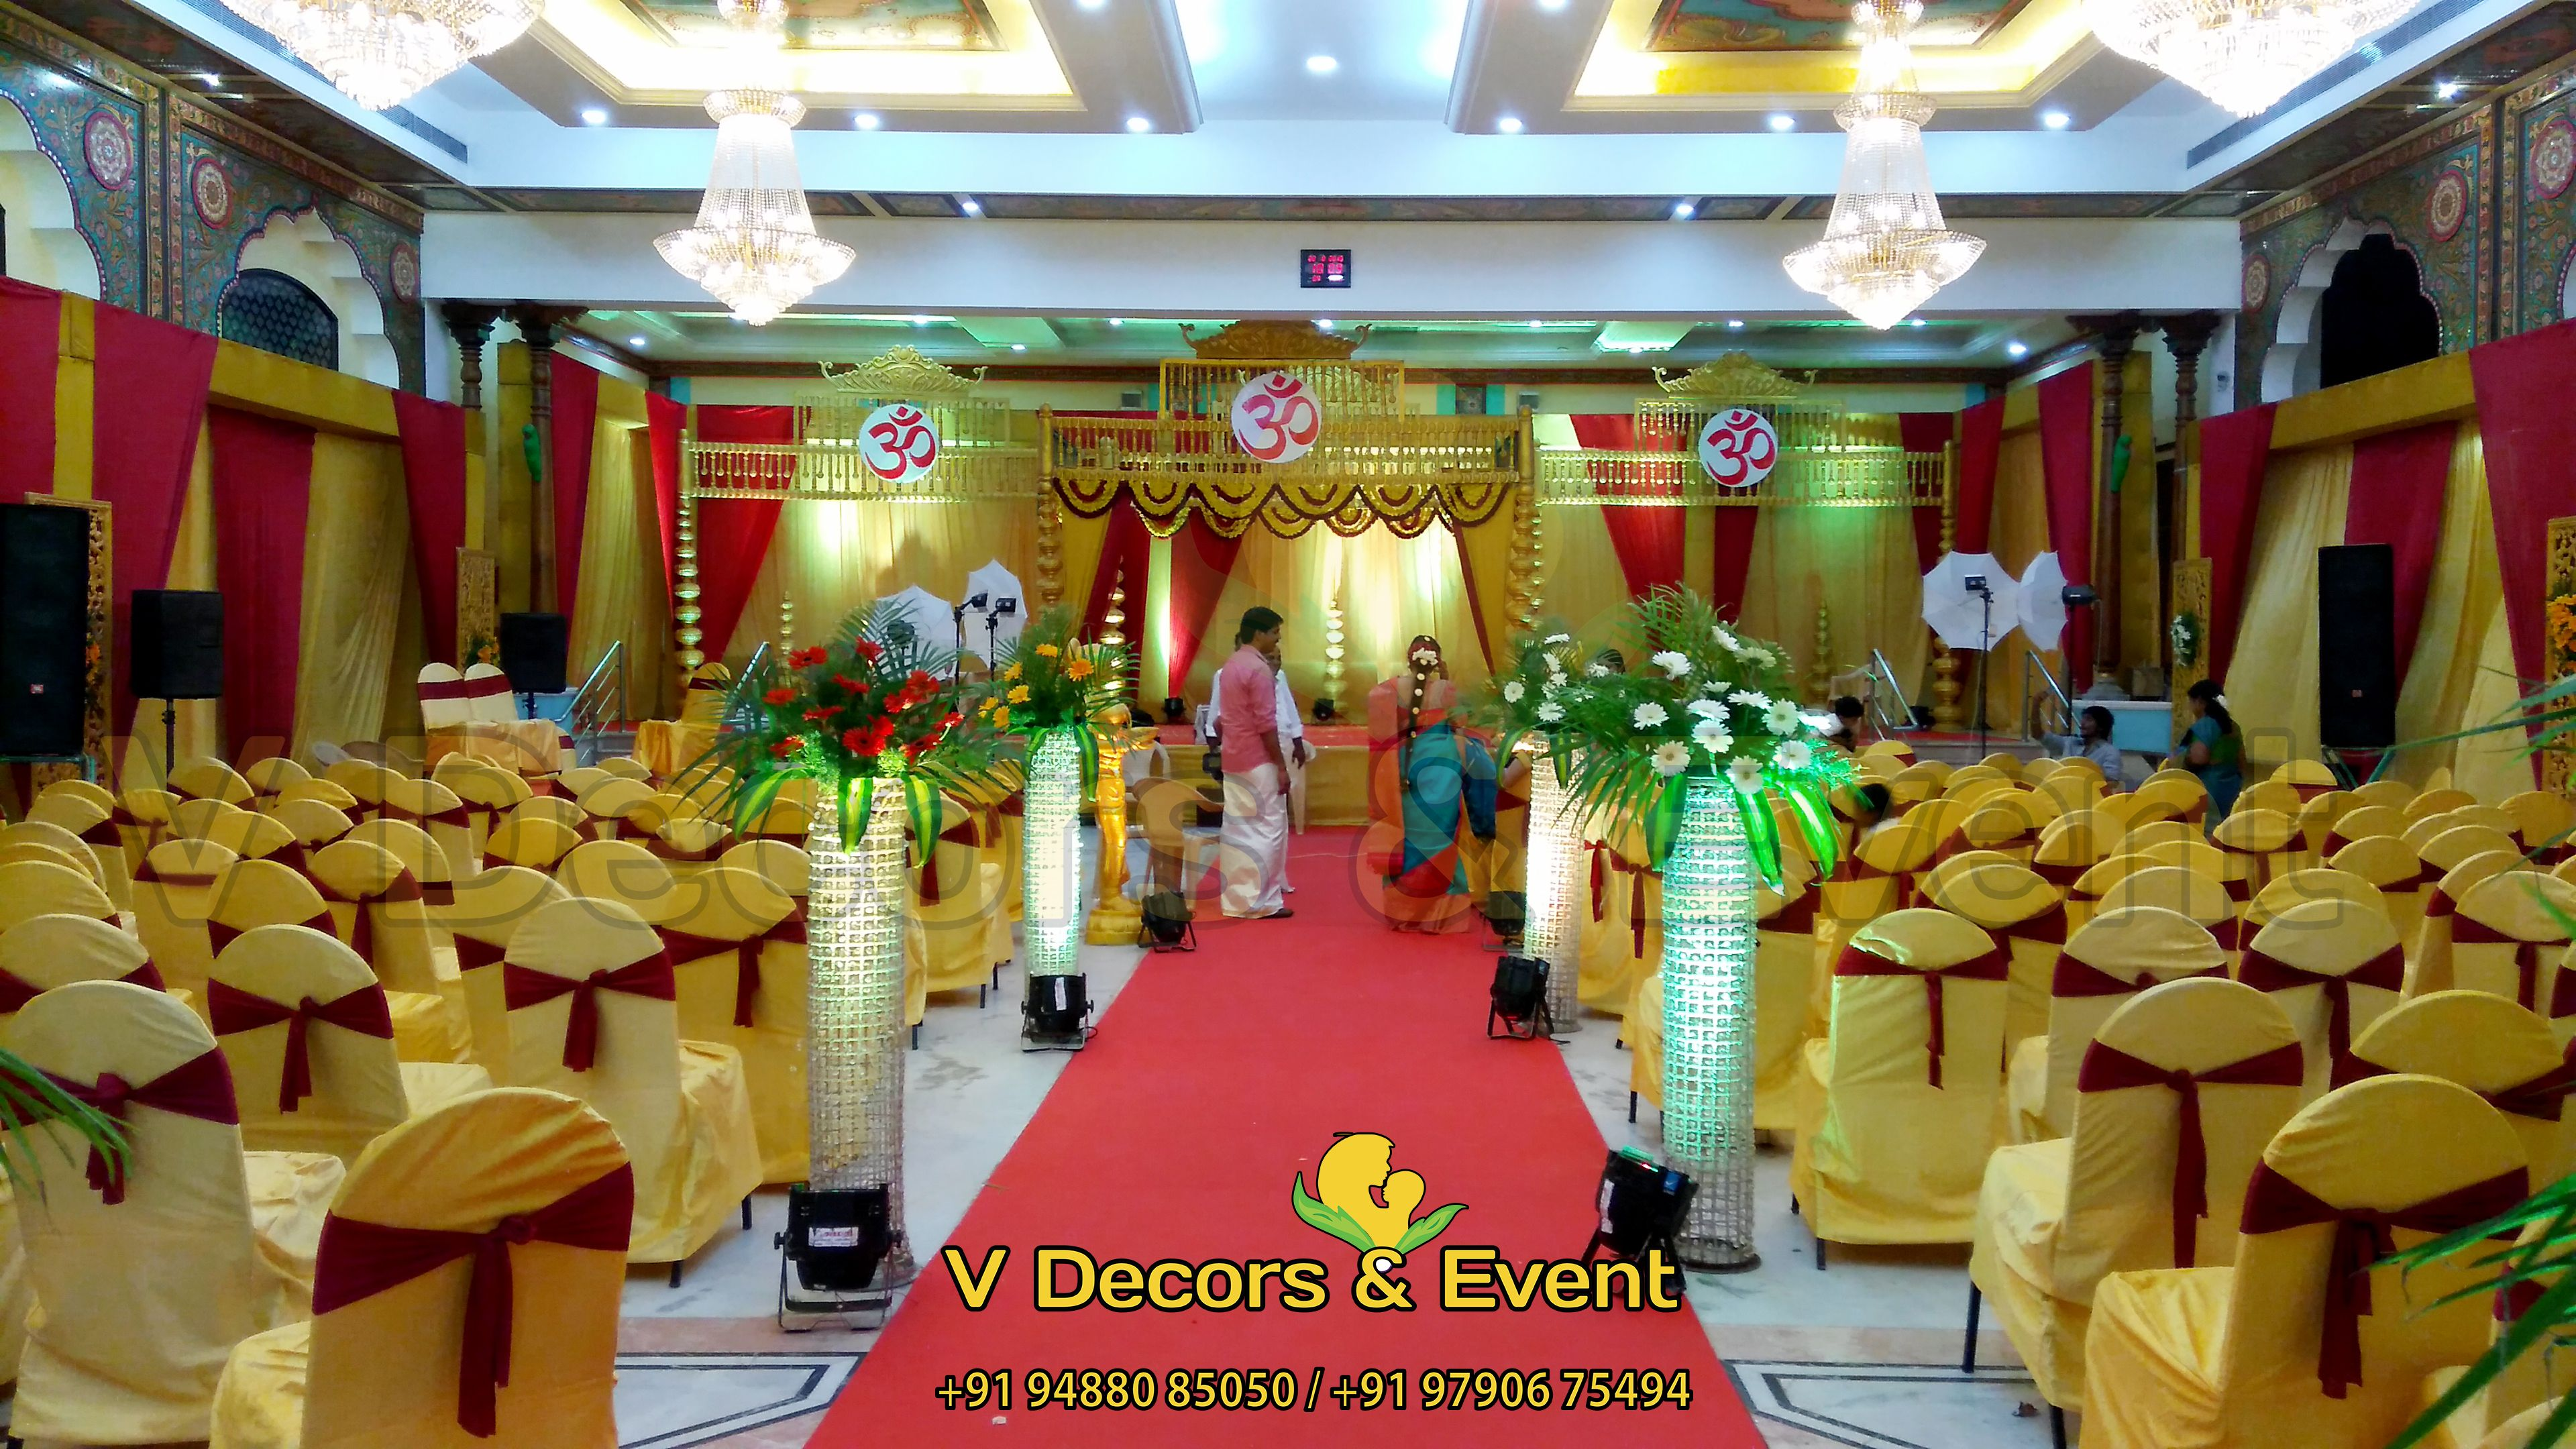 Wedding mandap decoration images  Pin by Wedding Decorators on Wedding Decorators in Salem  Pinterest